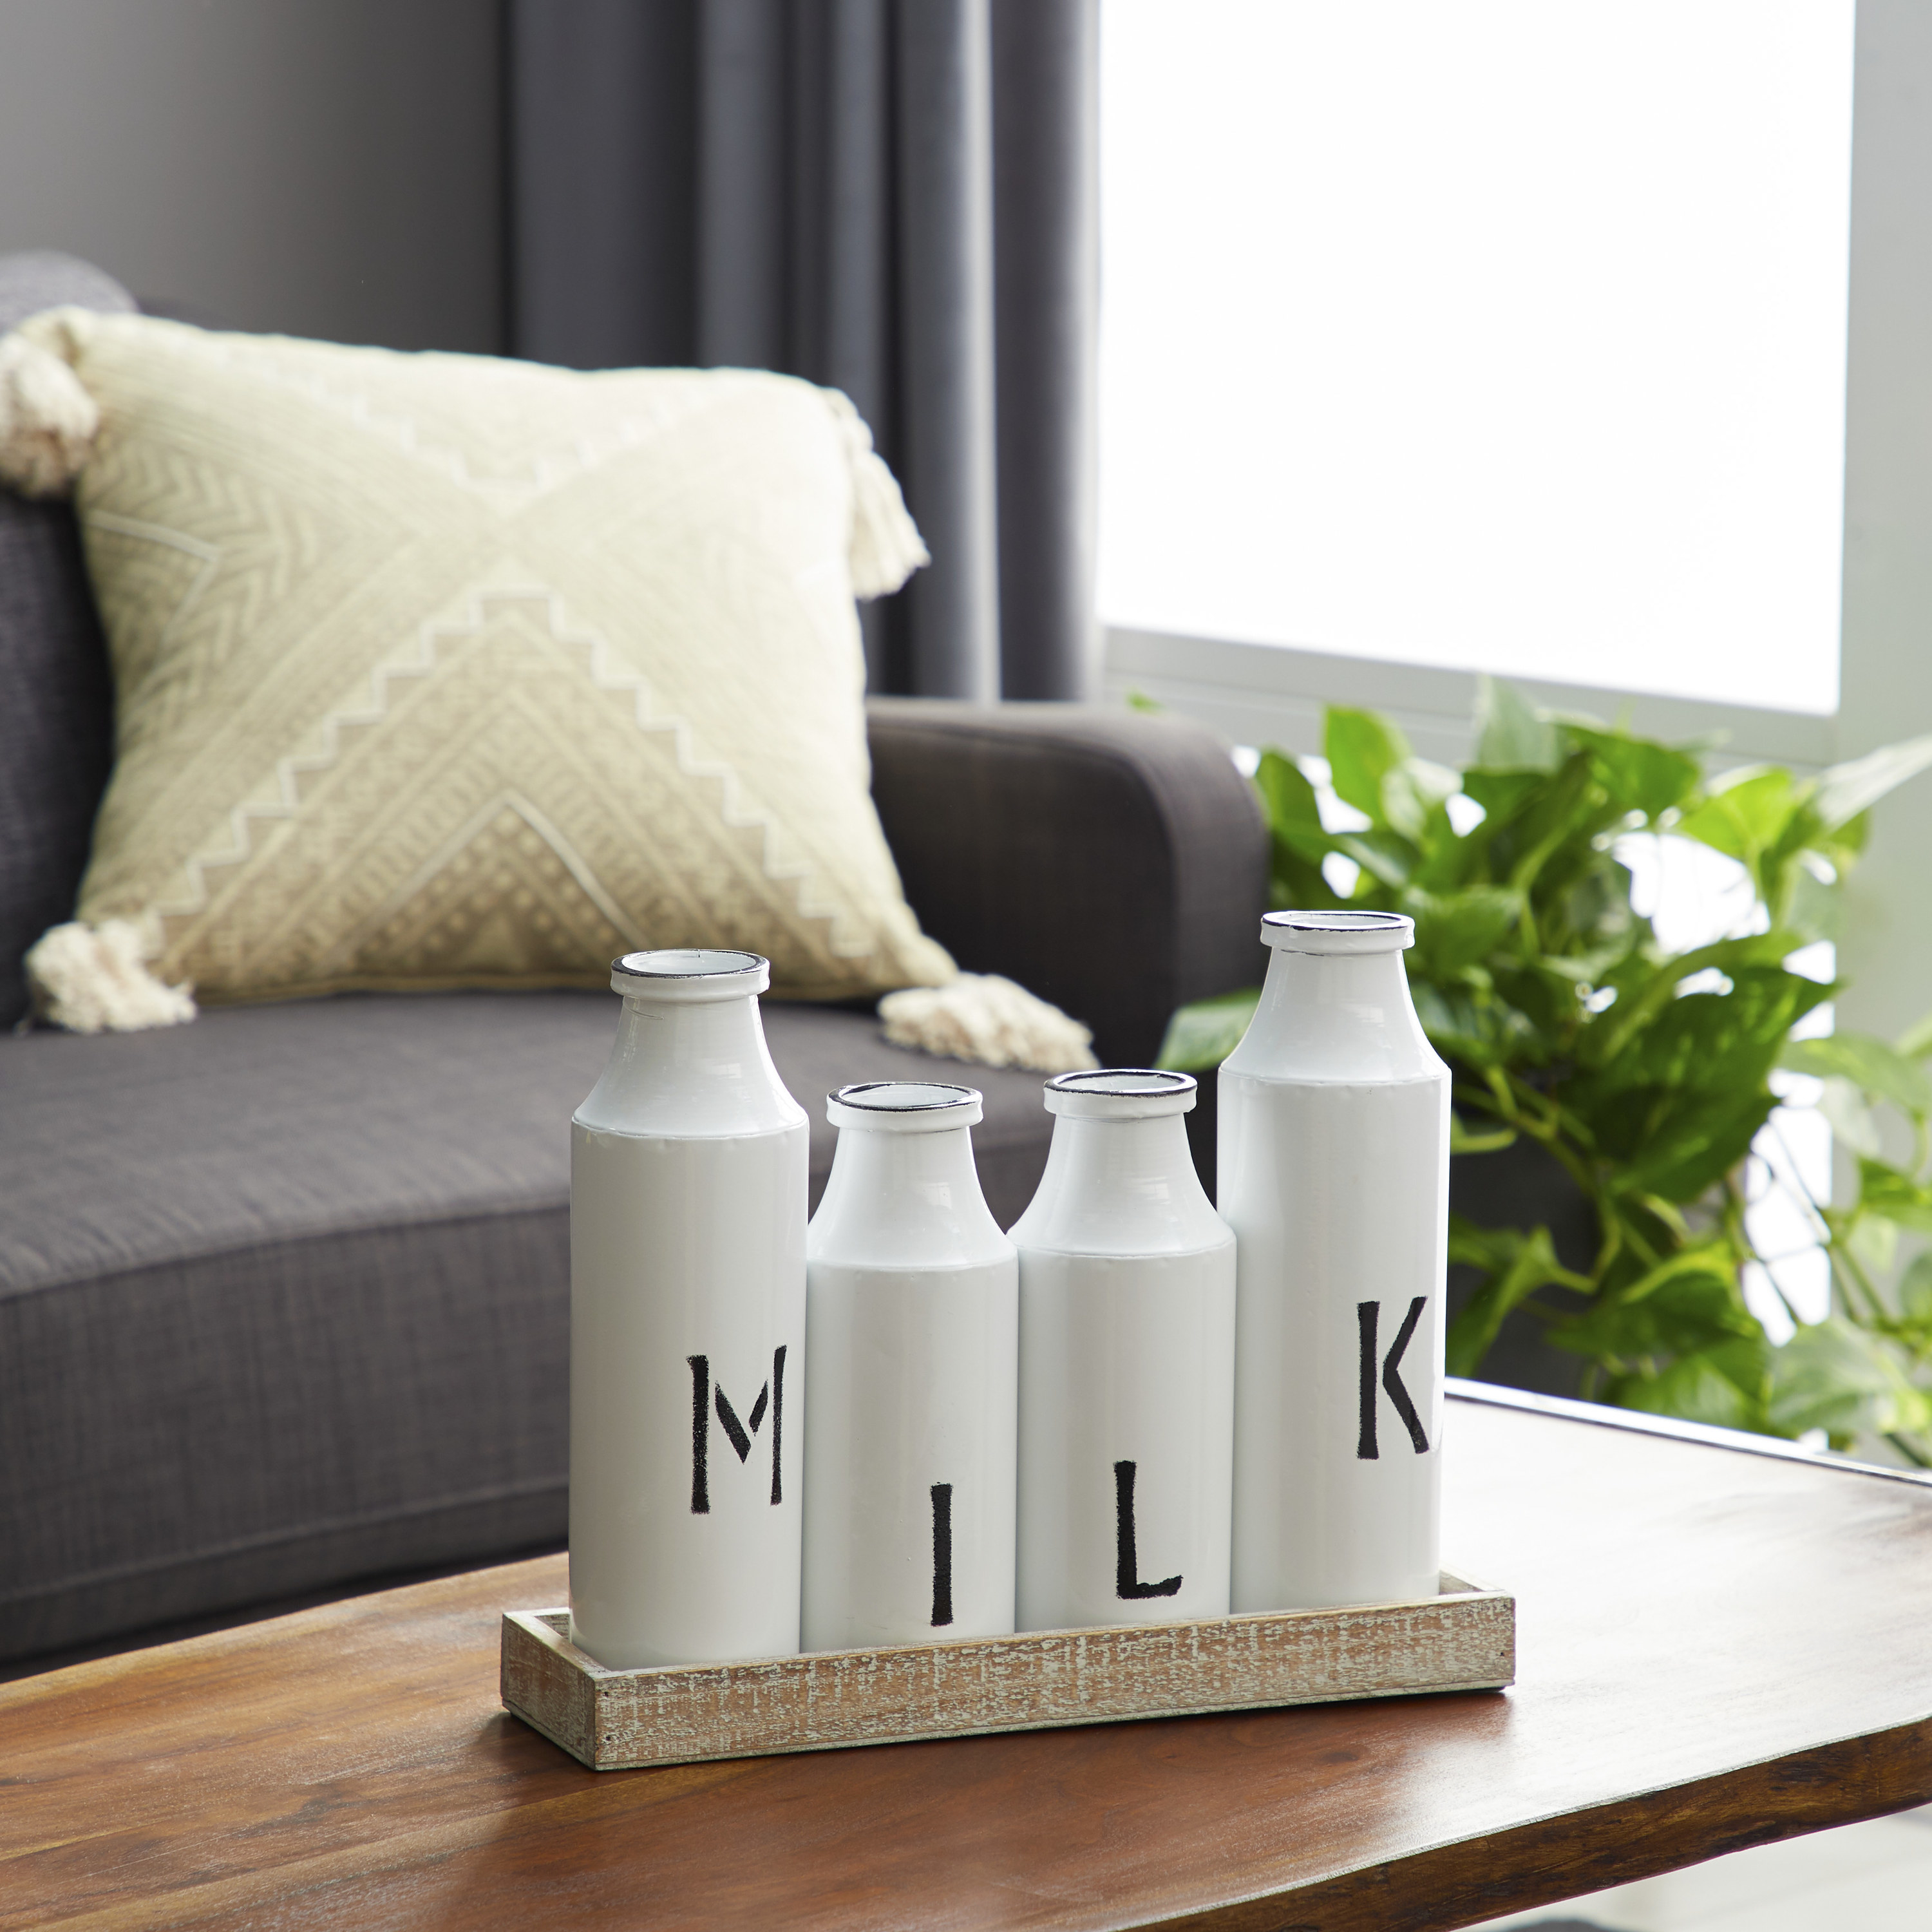 """Four white bottles that spell out """"Milk"""" in black text"""